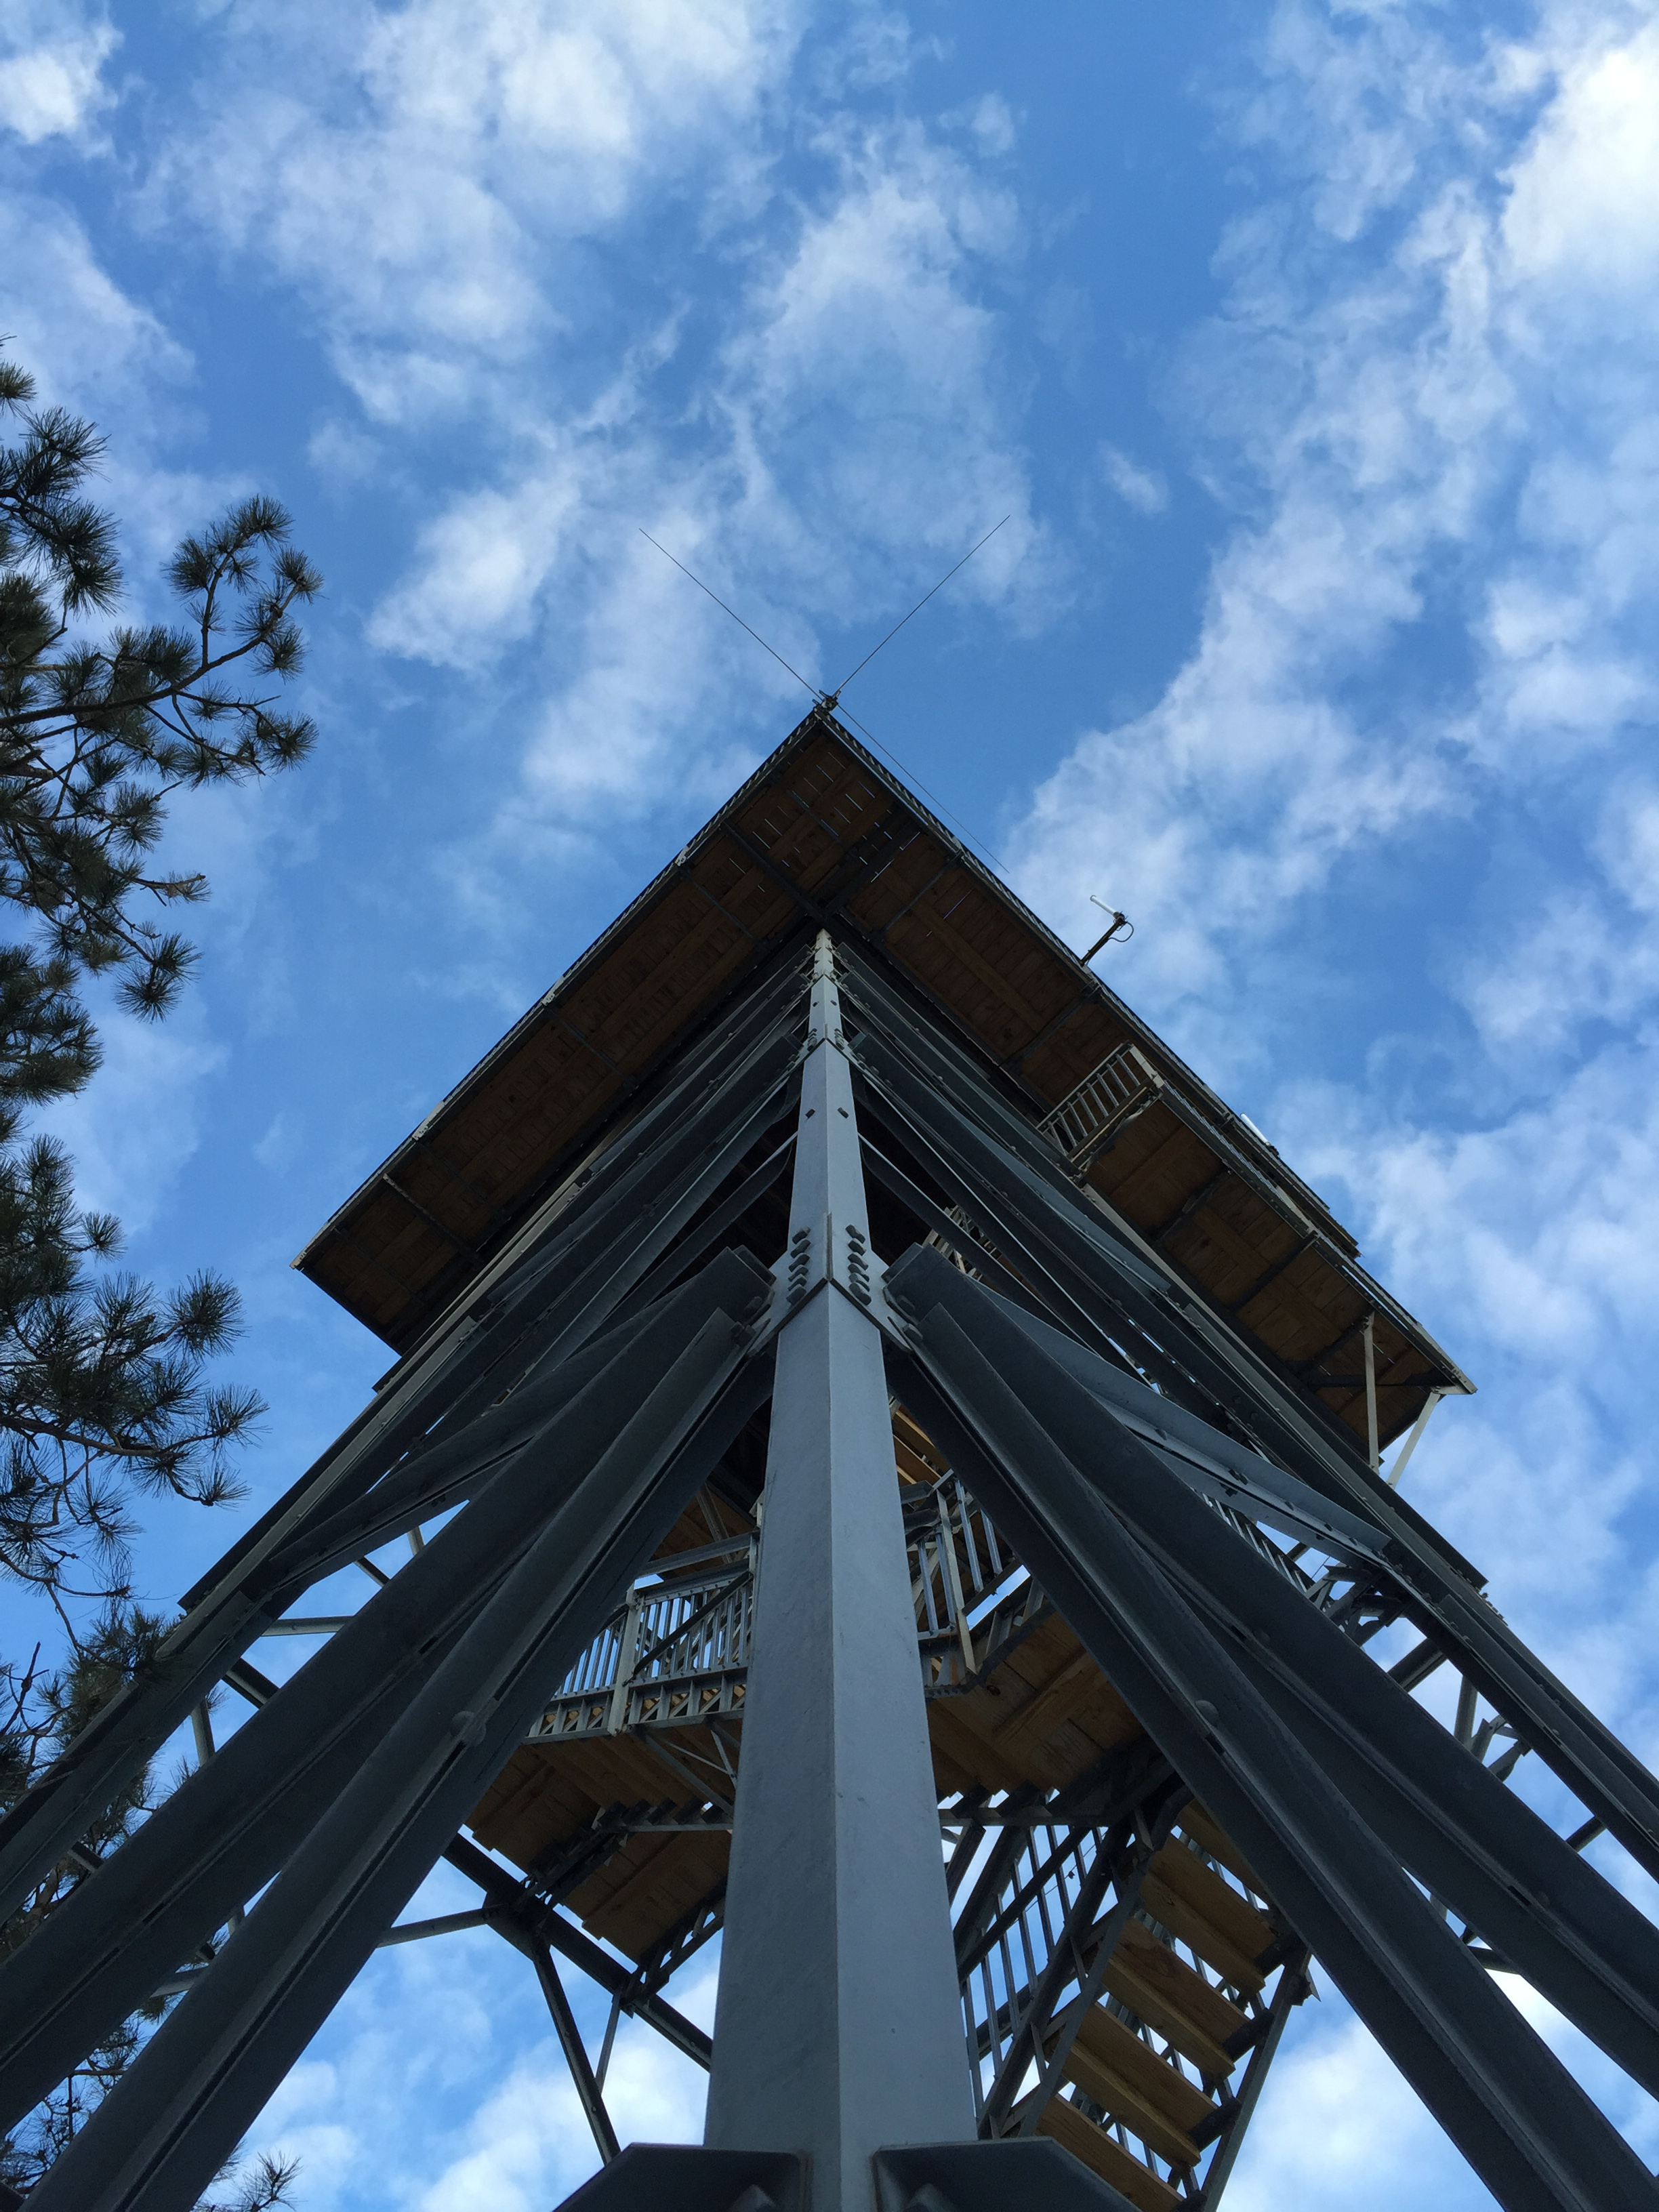 A view looking up the Scott Lookout Tower.